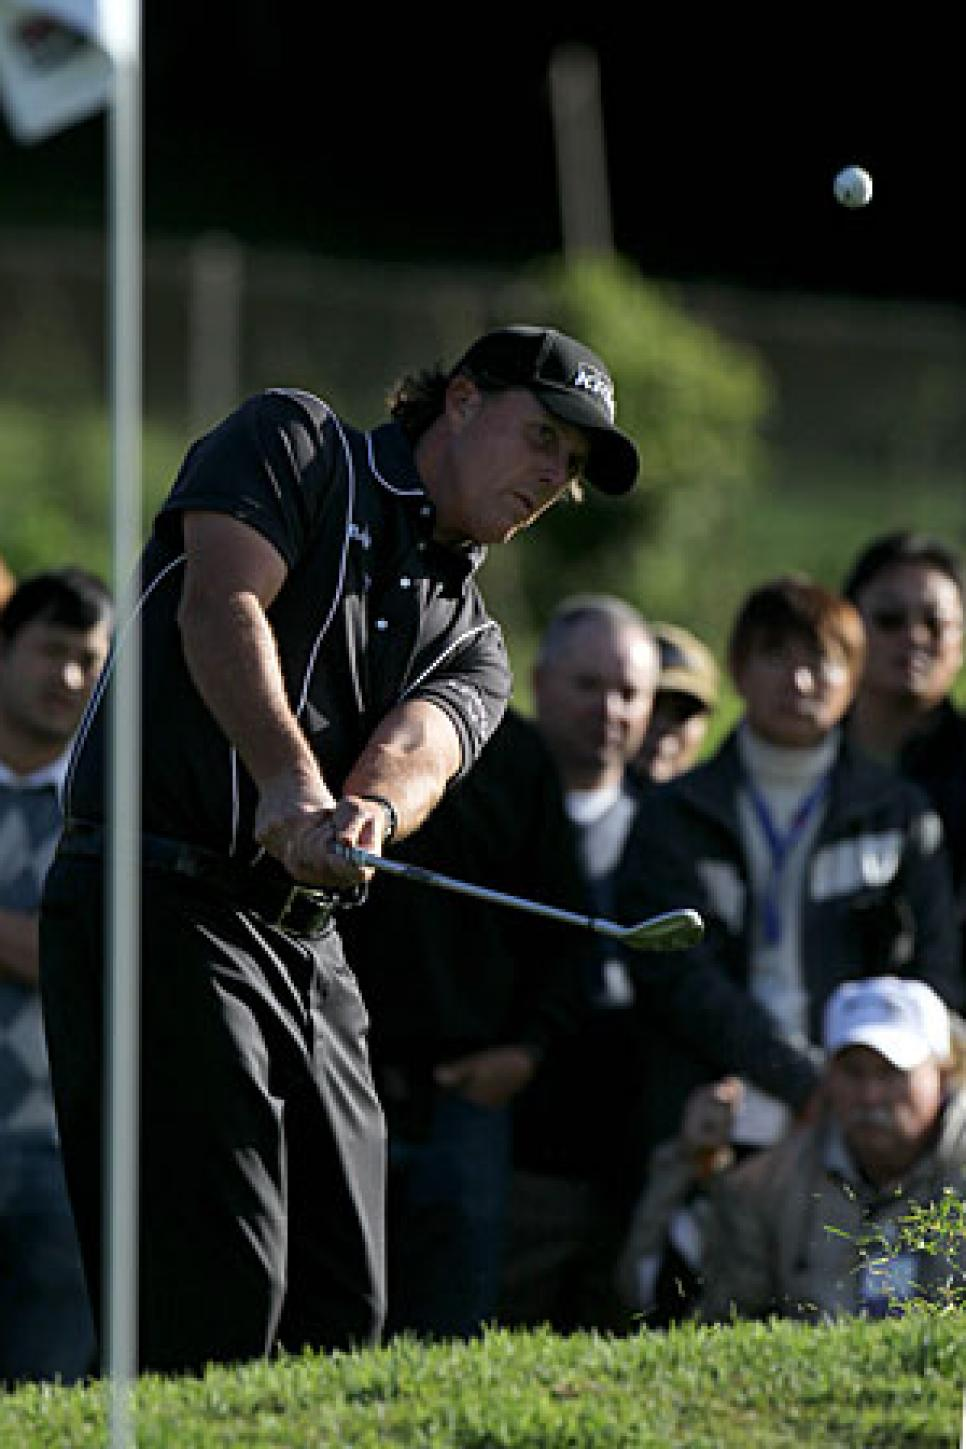 golfworld-2010-02-gwar01_0208_phil_300.jpg